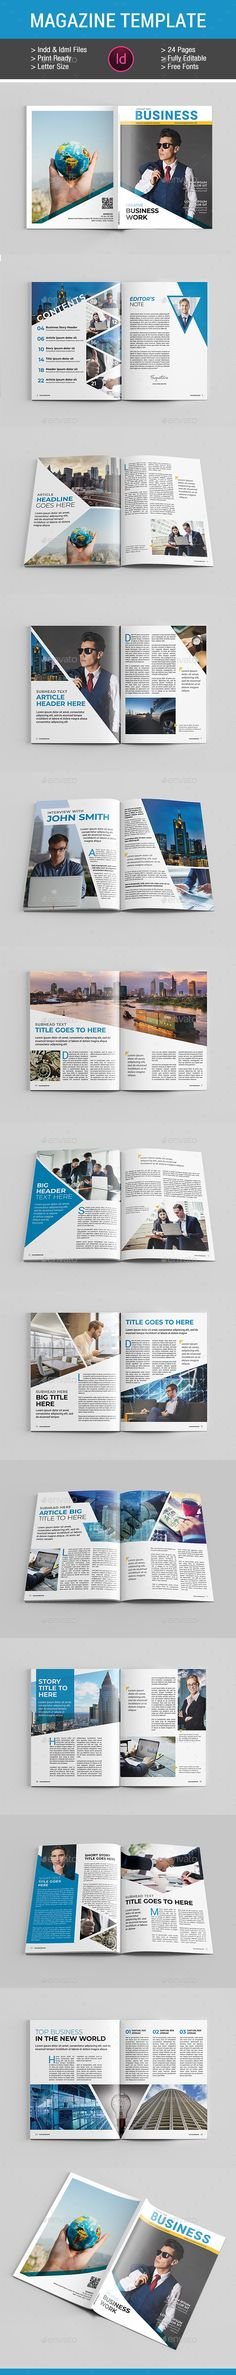 Business Magazine Template InDesign INDD